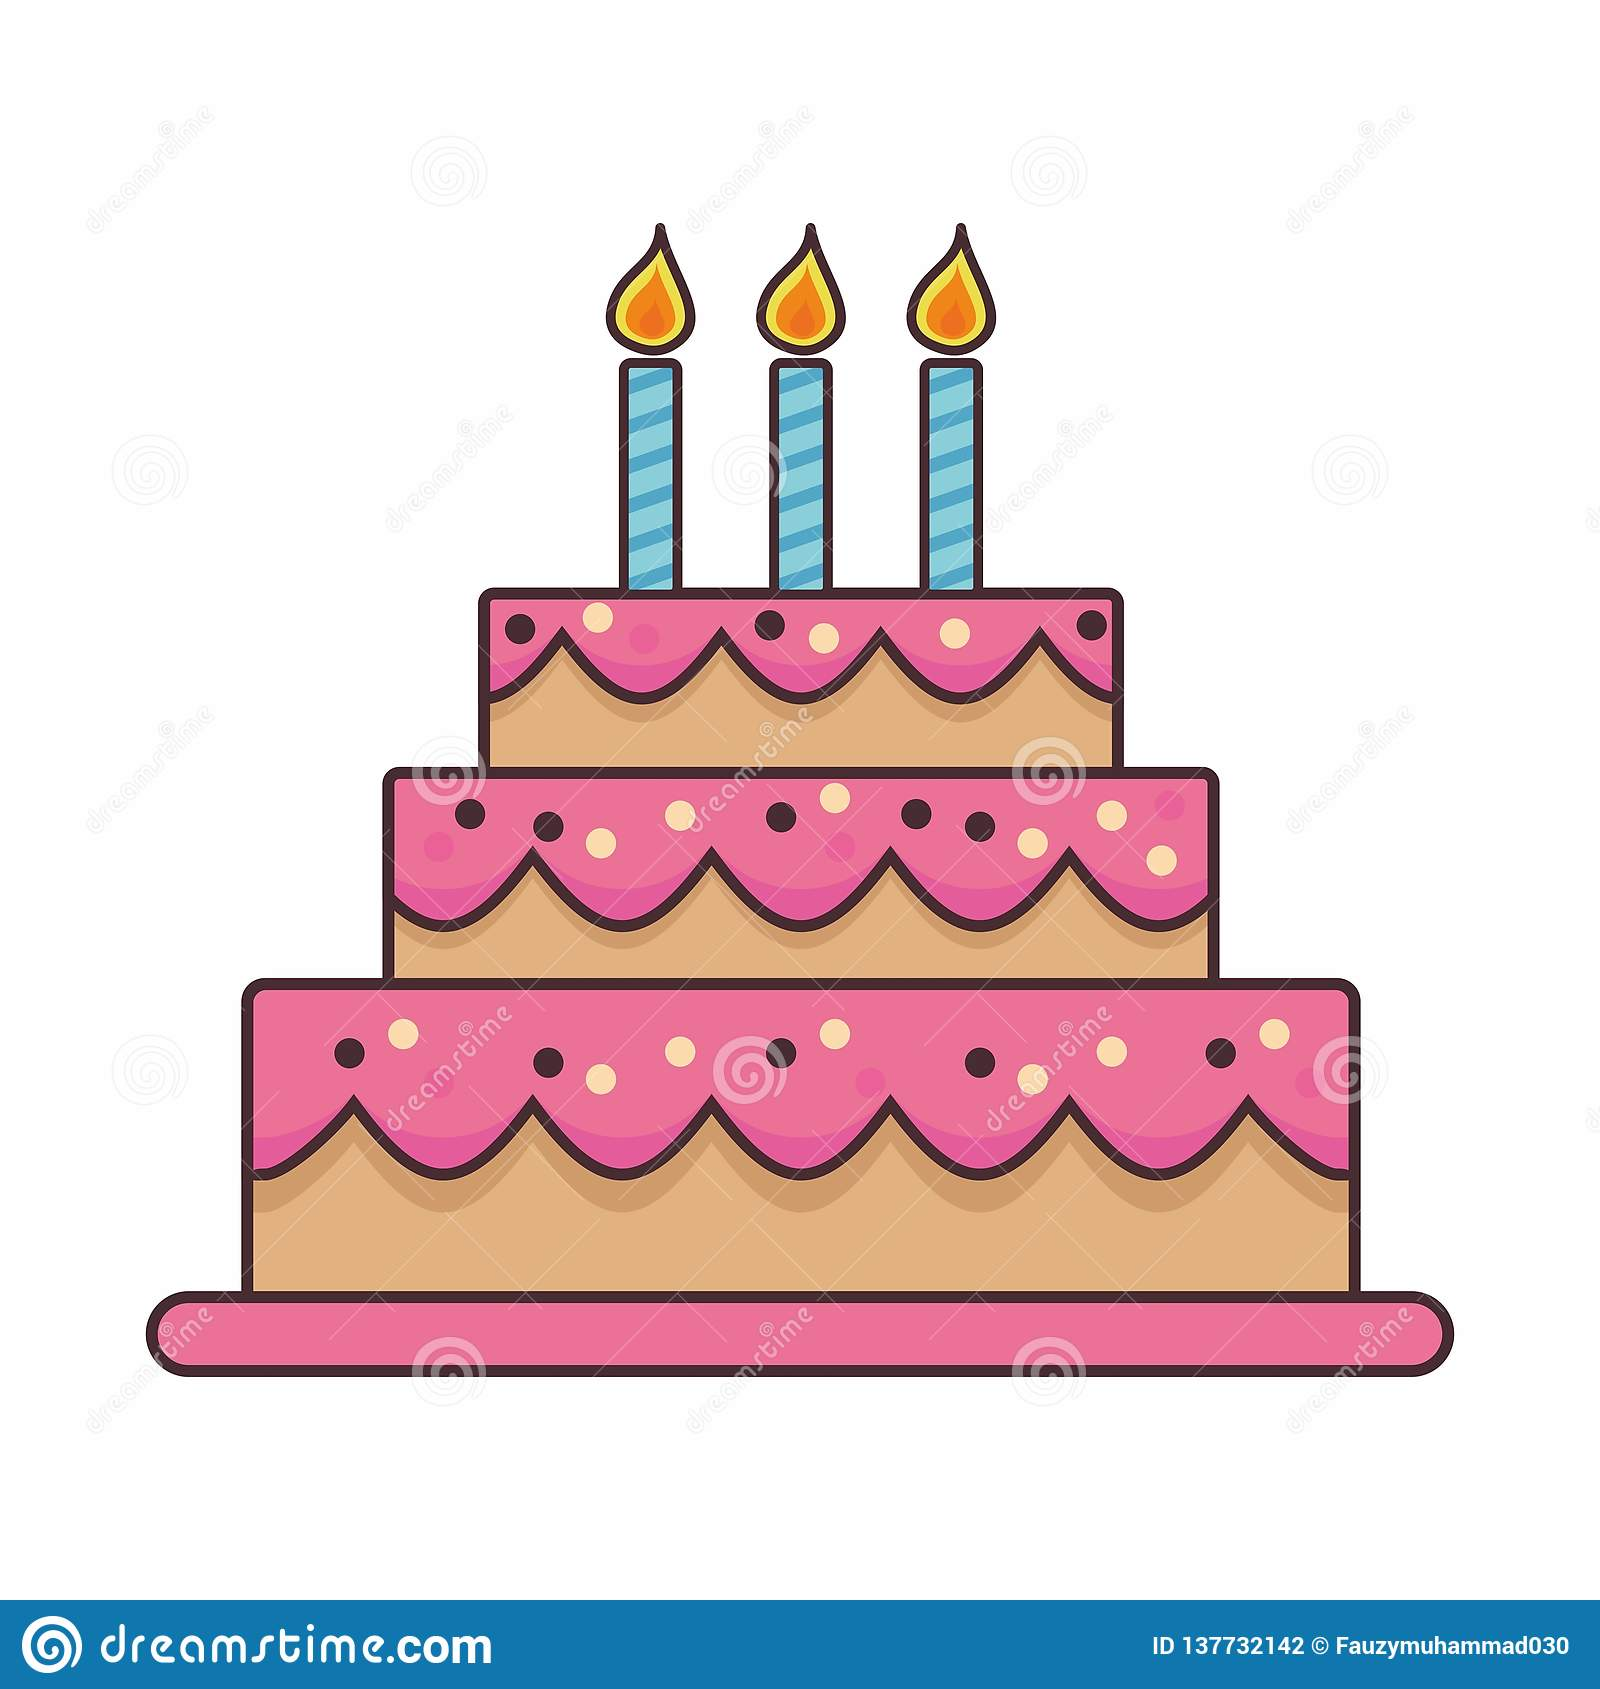 Marvelous Birthday Cake Cartoon Illustration On Isolated Background Stock Funny Birthday Cards Online Alyptdamsfinfo